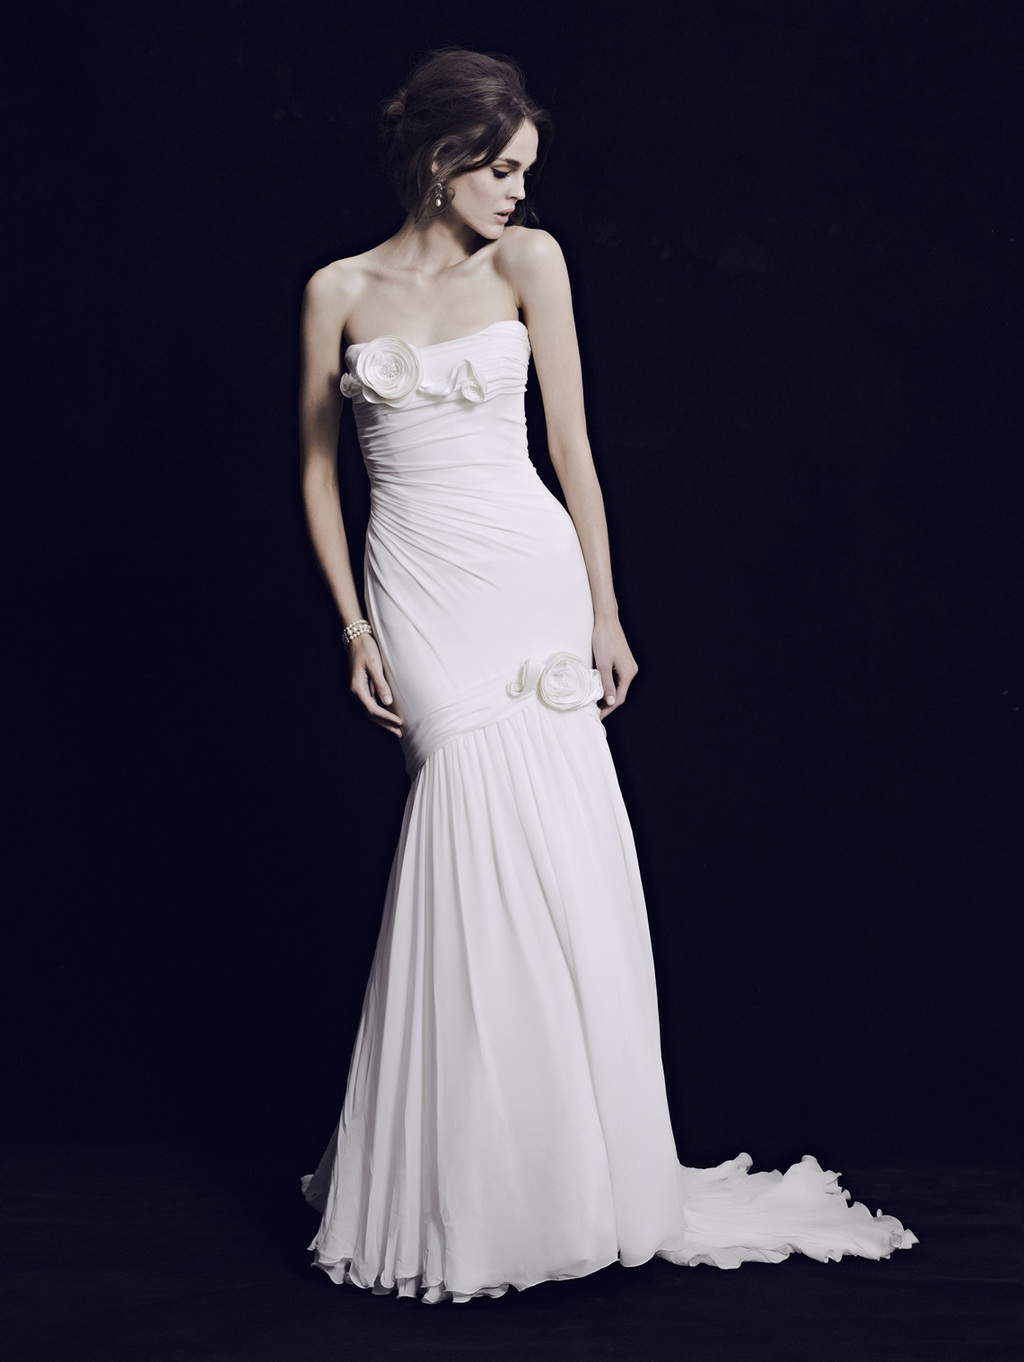 Mariana-hardwick-wedding-dress-2013-bridal-classic-8.full